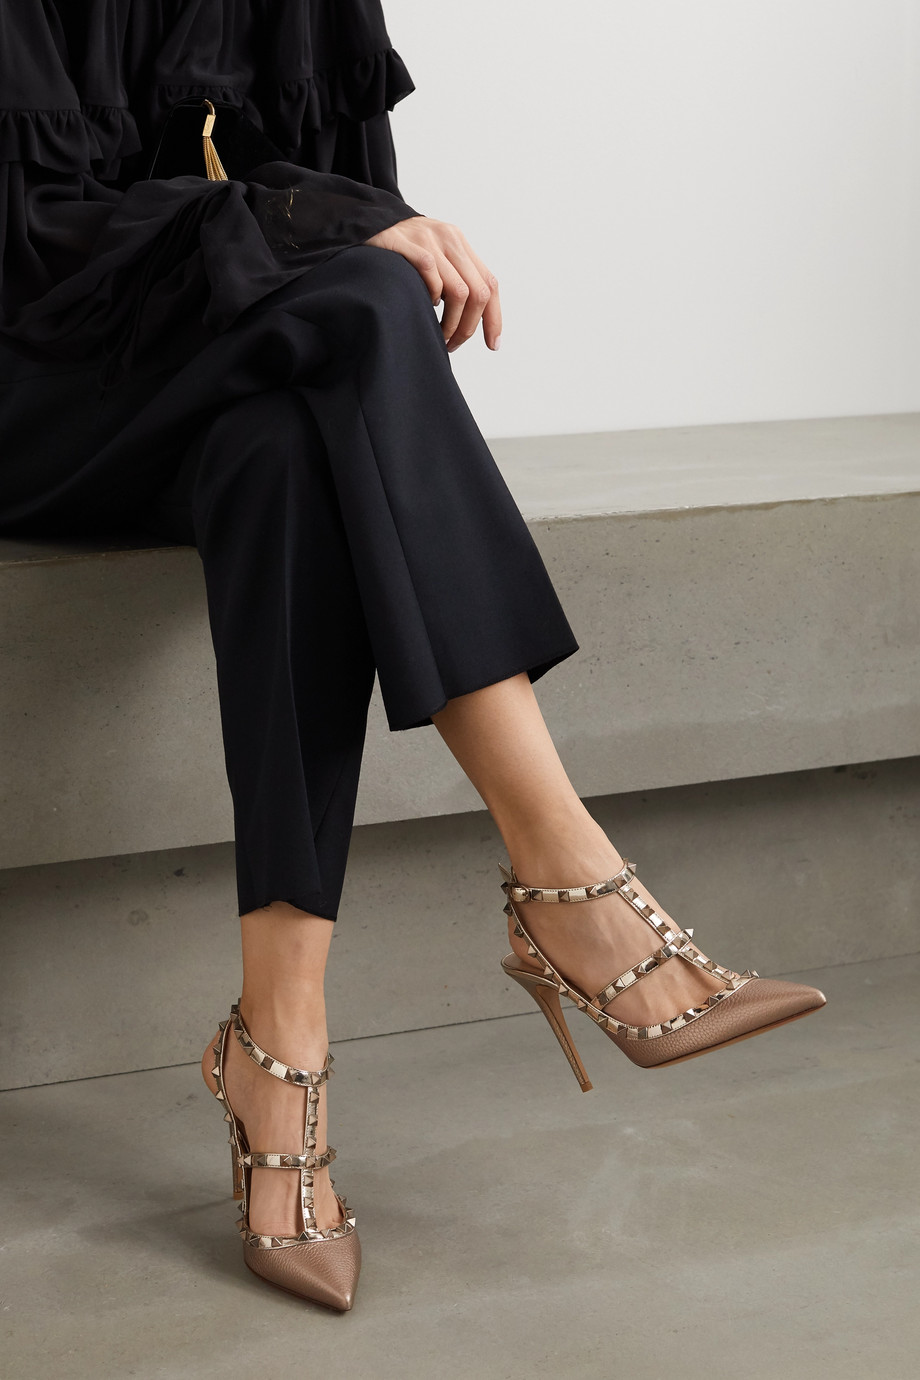 Valentino Valentino Garavani Rockstud 105 metallic textured-leather pumps